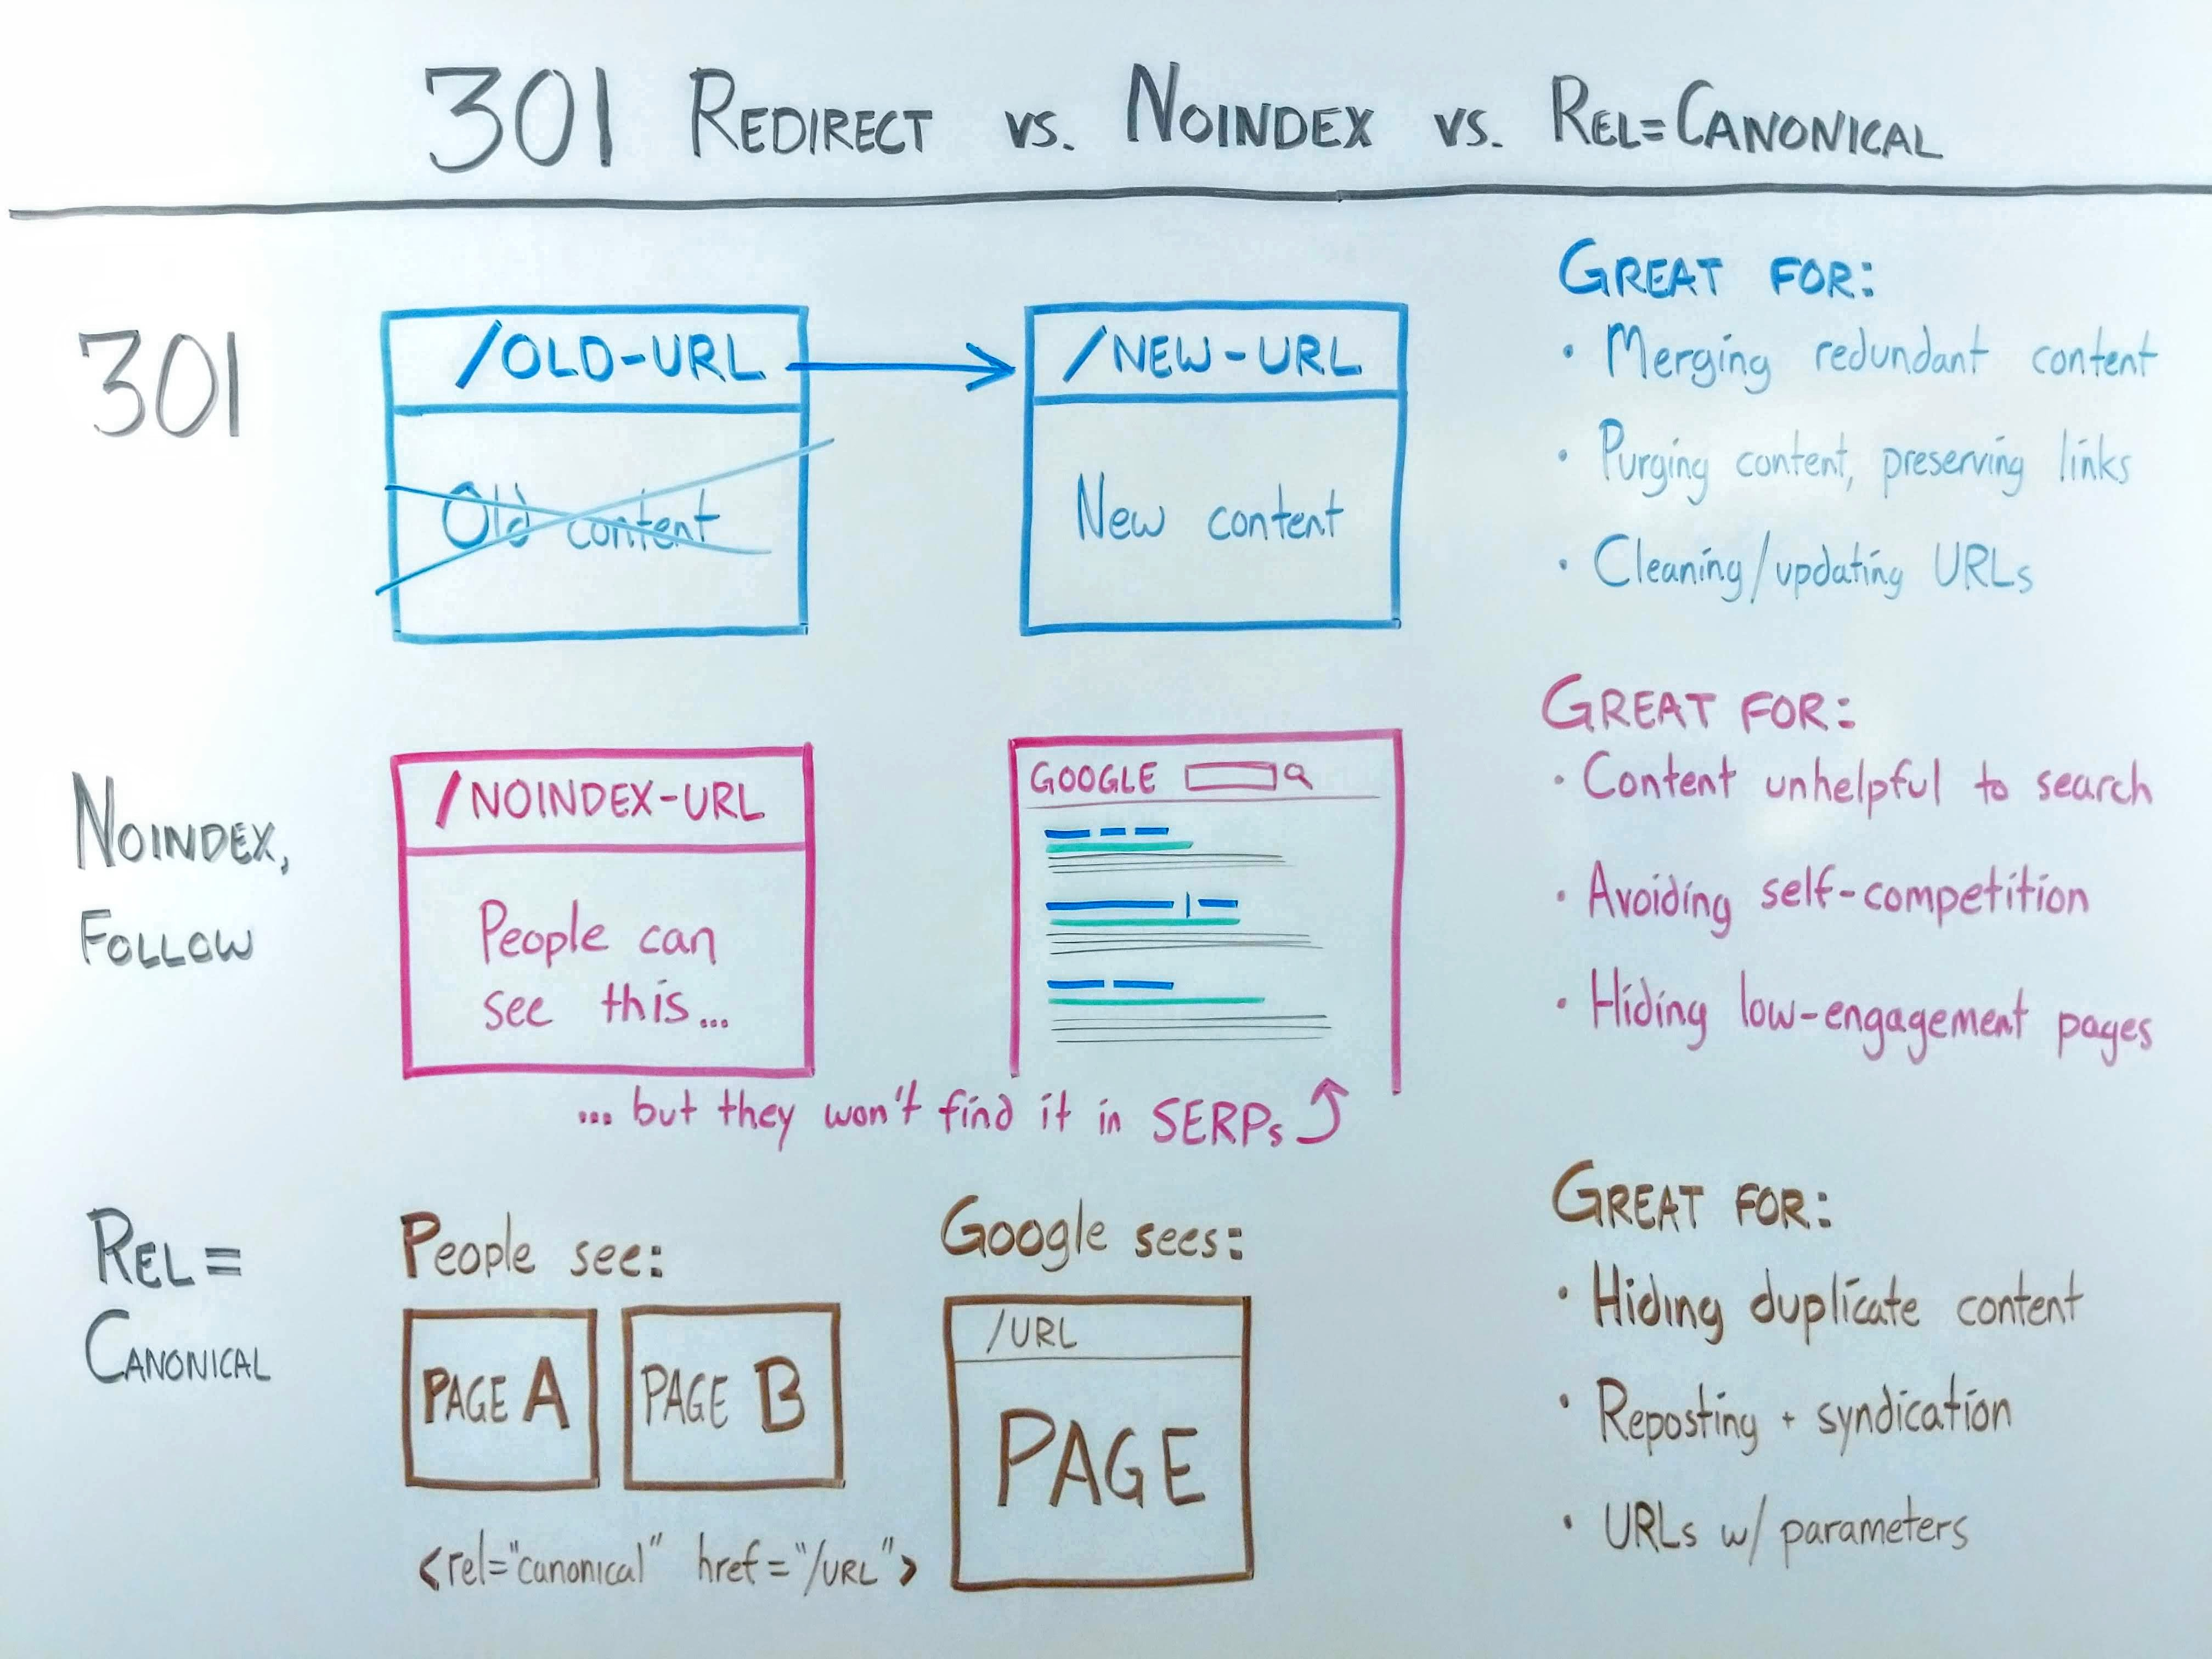 301-redirects-noindex-rel-canonical